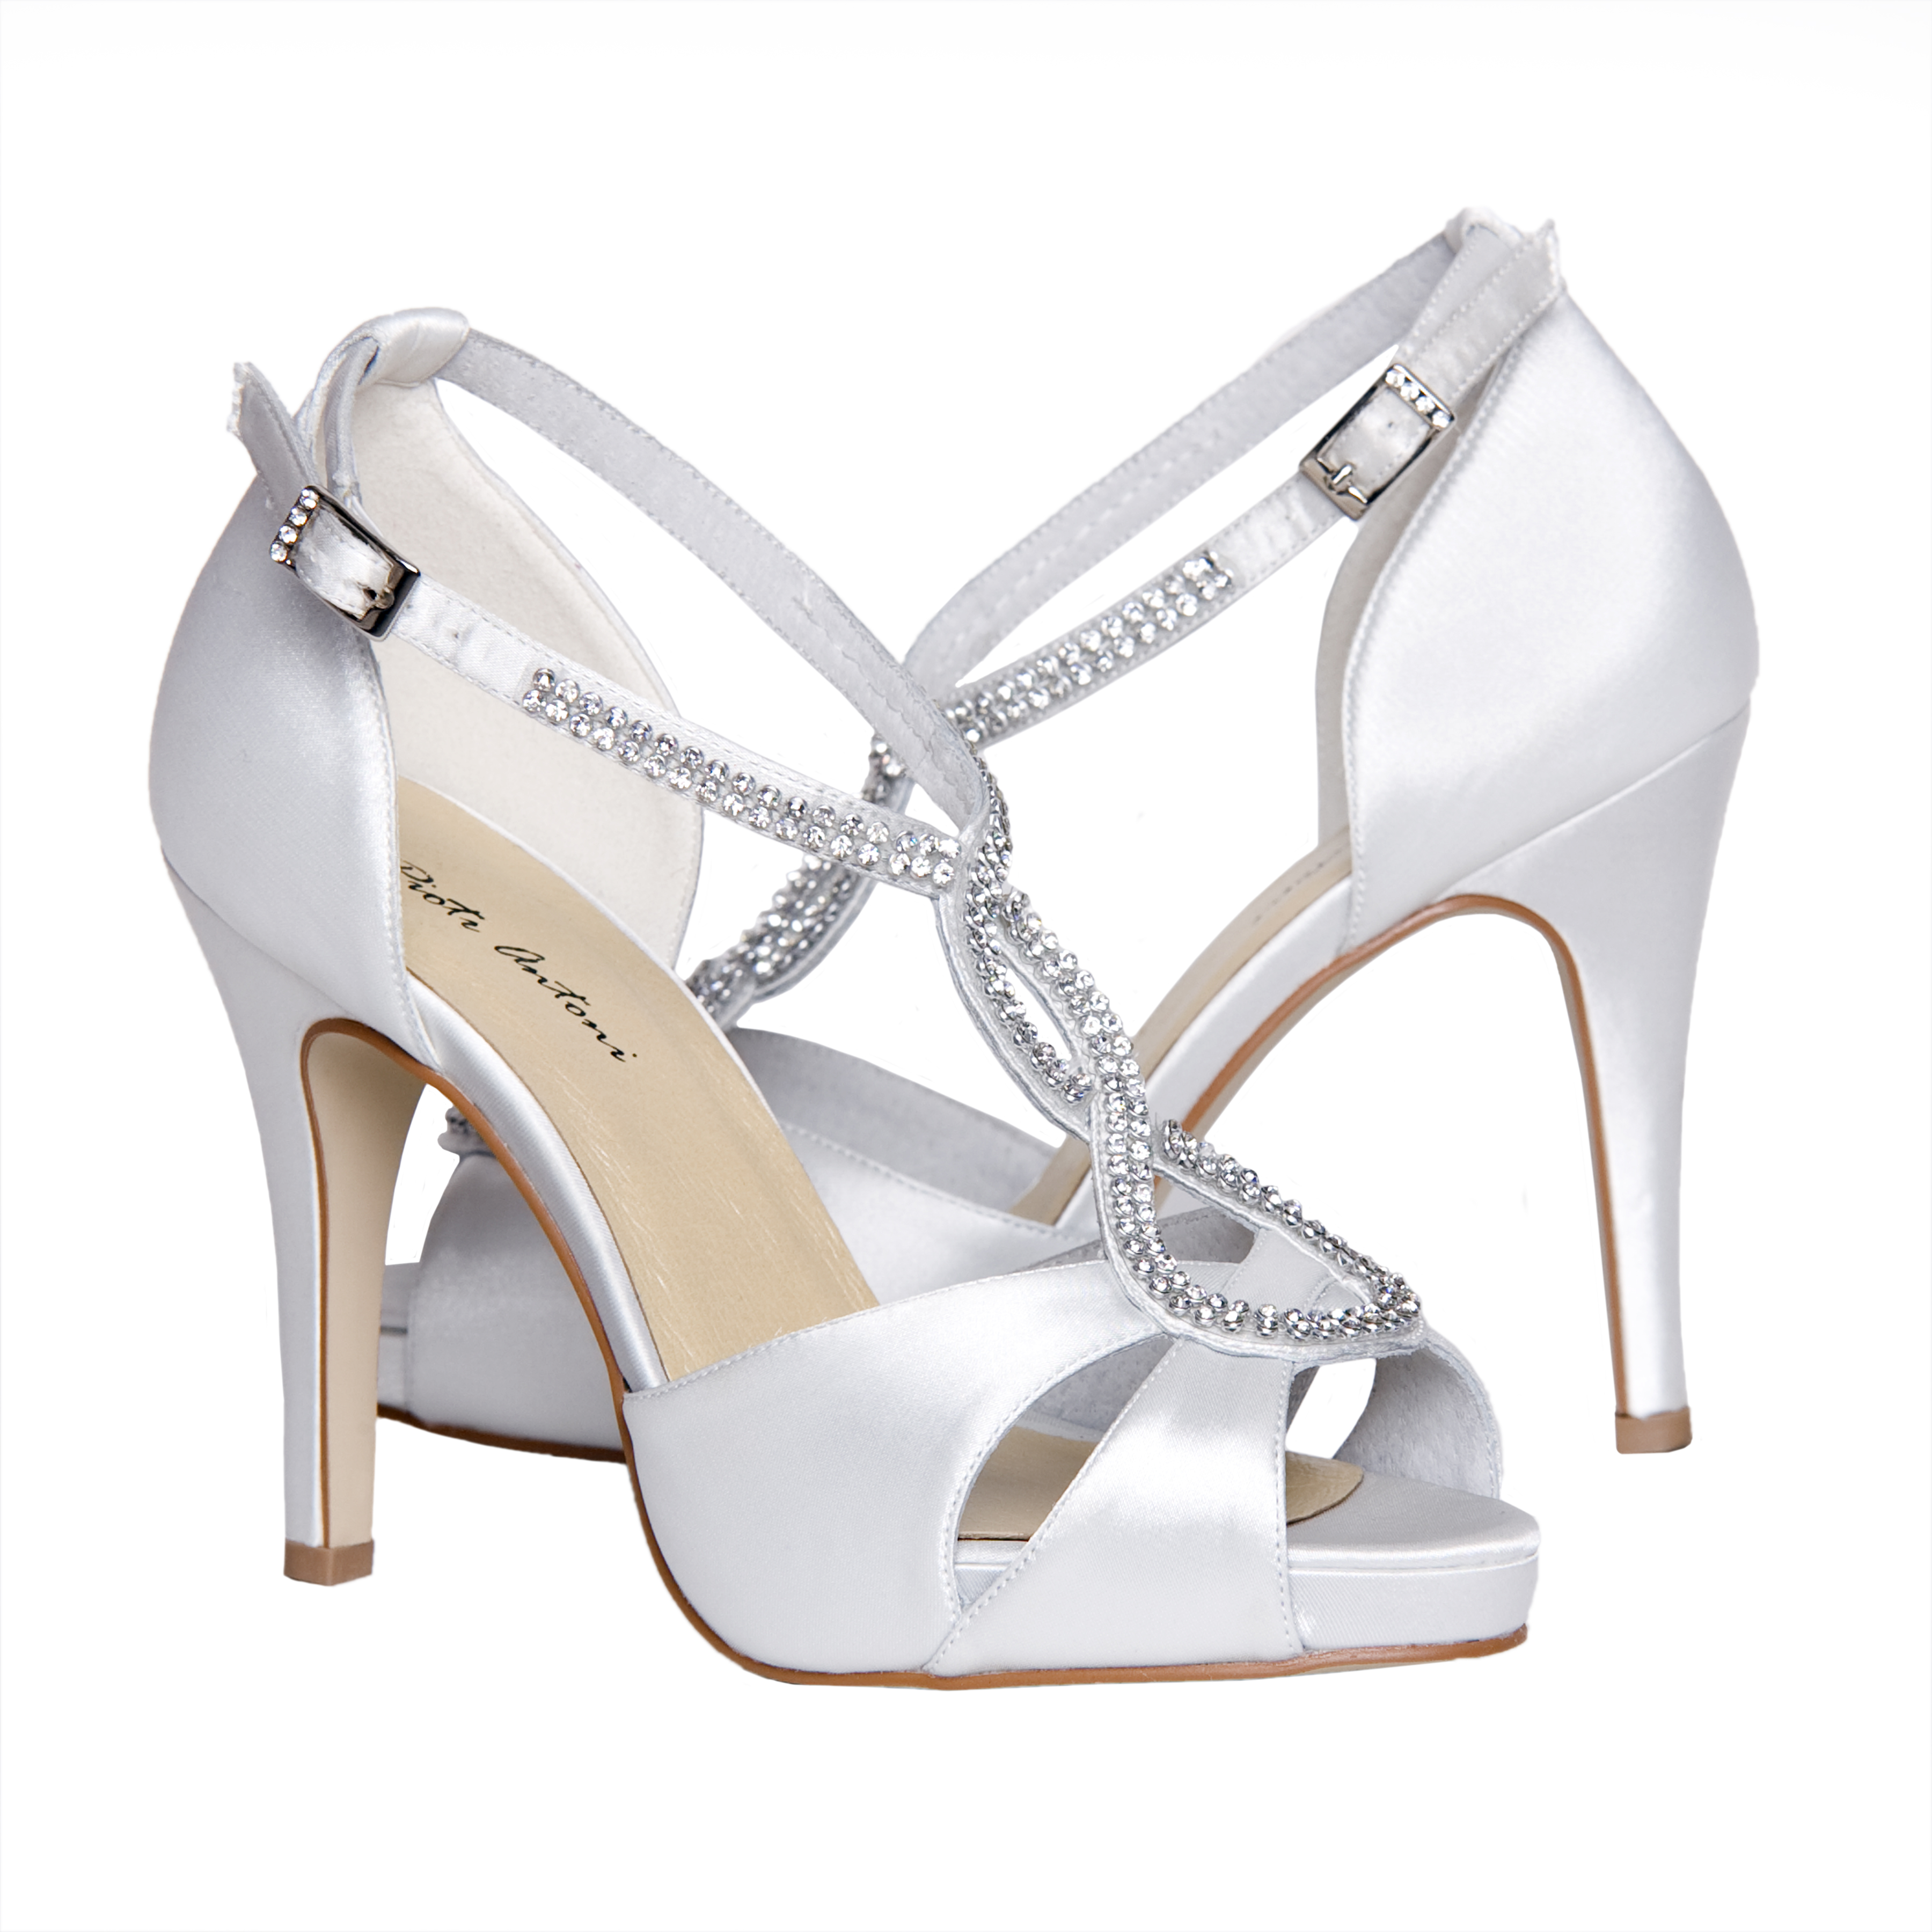 Piotr Antoni Wedding Shoes